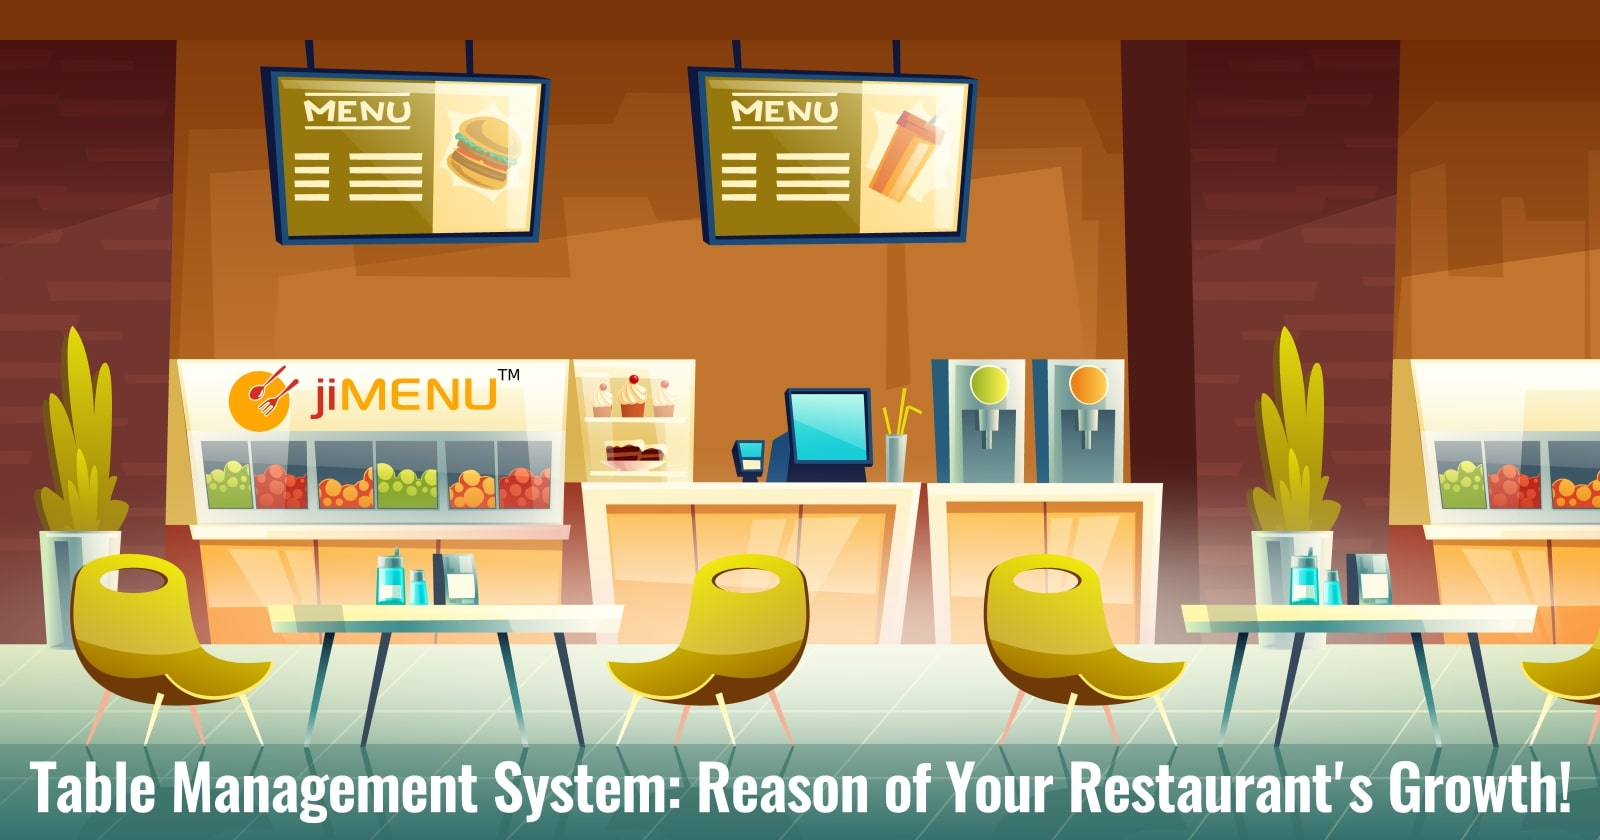 Table Management System: Reason for Your Restaurant's Growth!